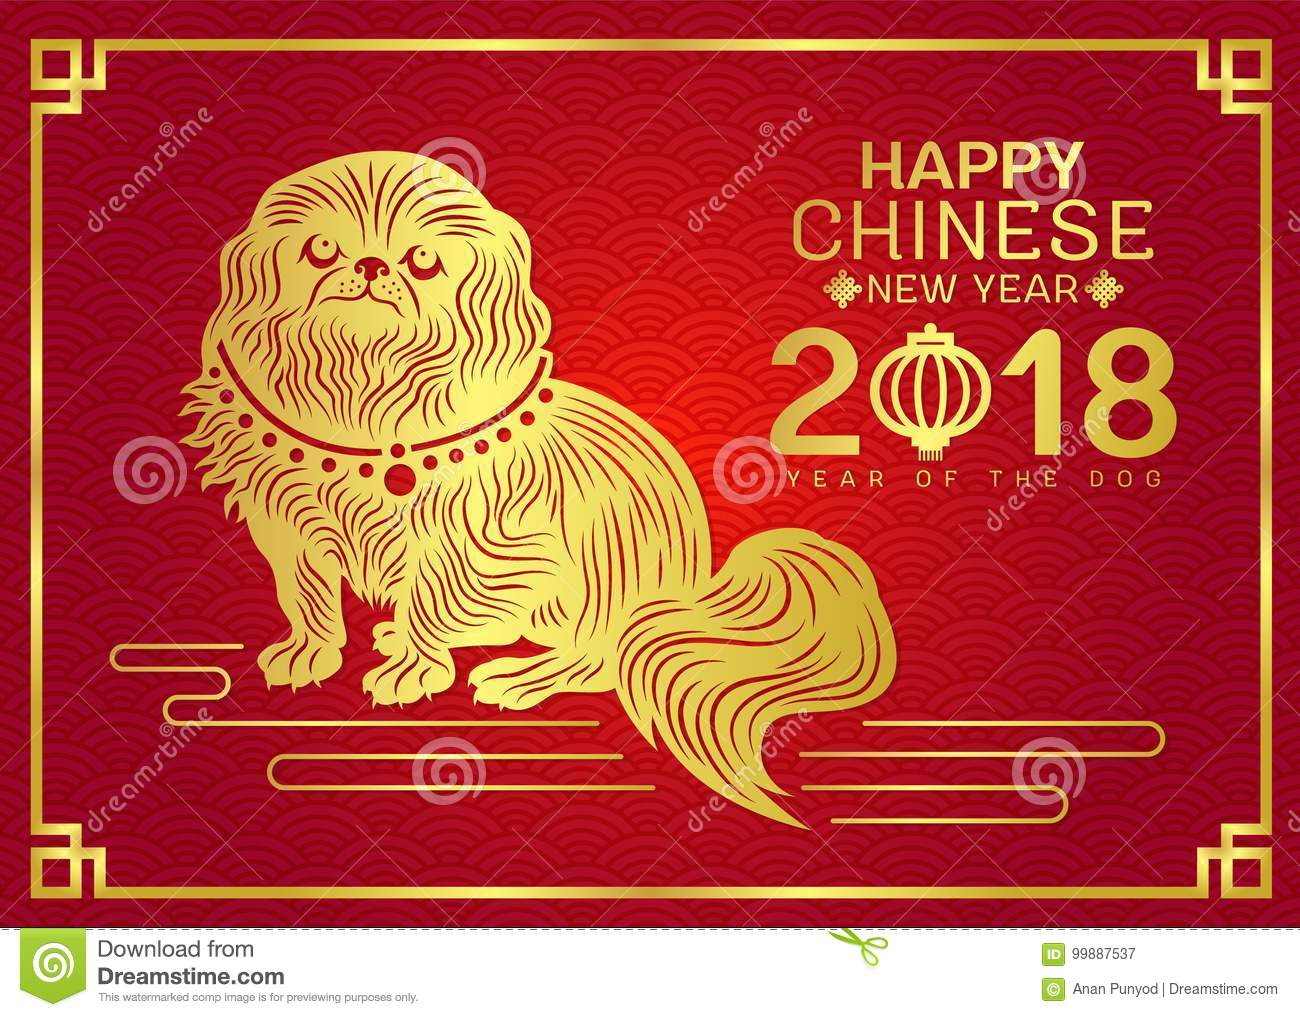 happy chinese new year 2018 card with gold paper cut china dog zodiac on red background